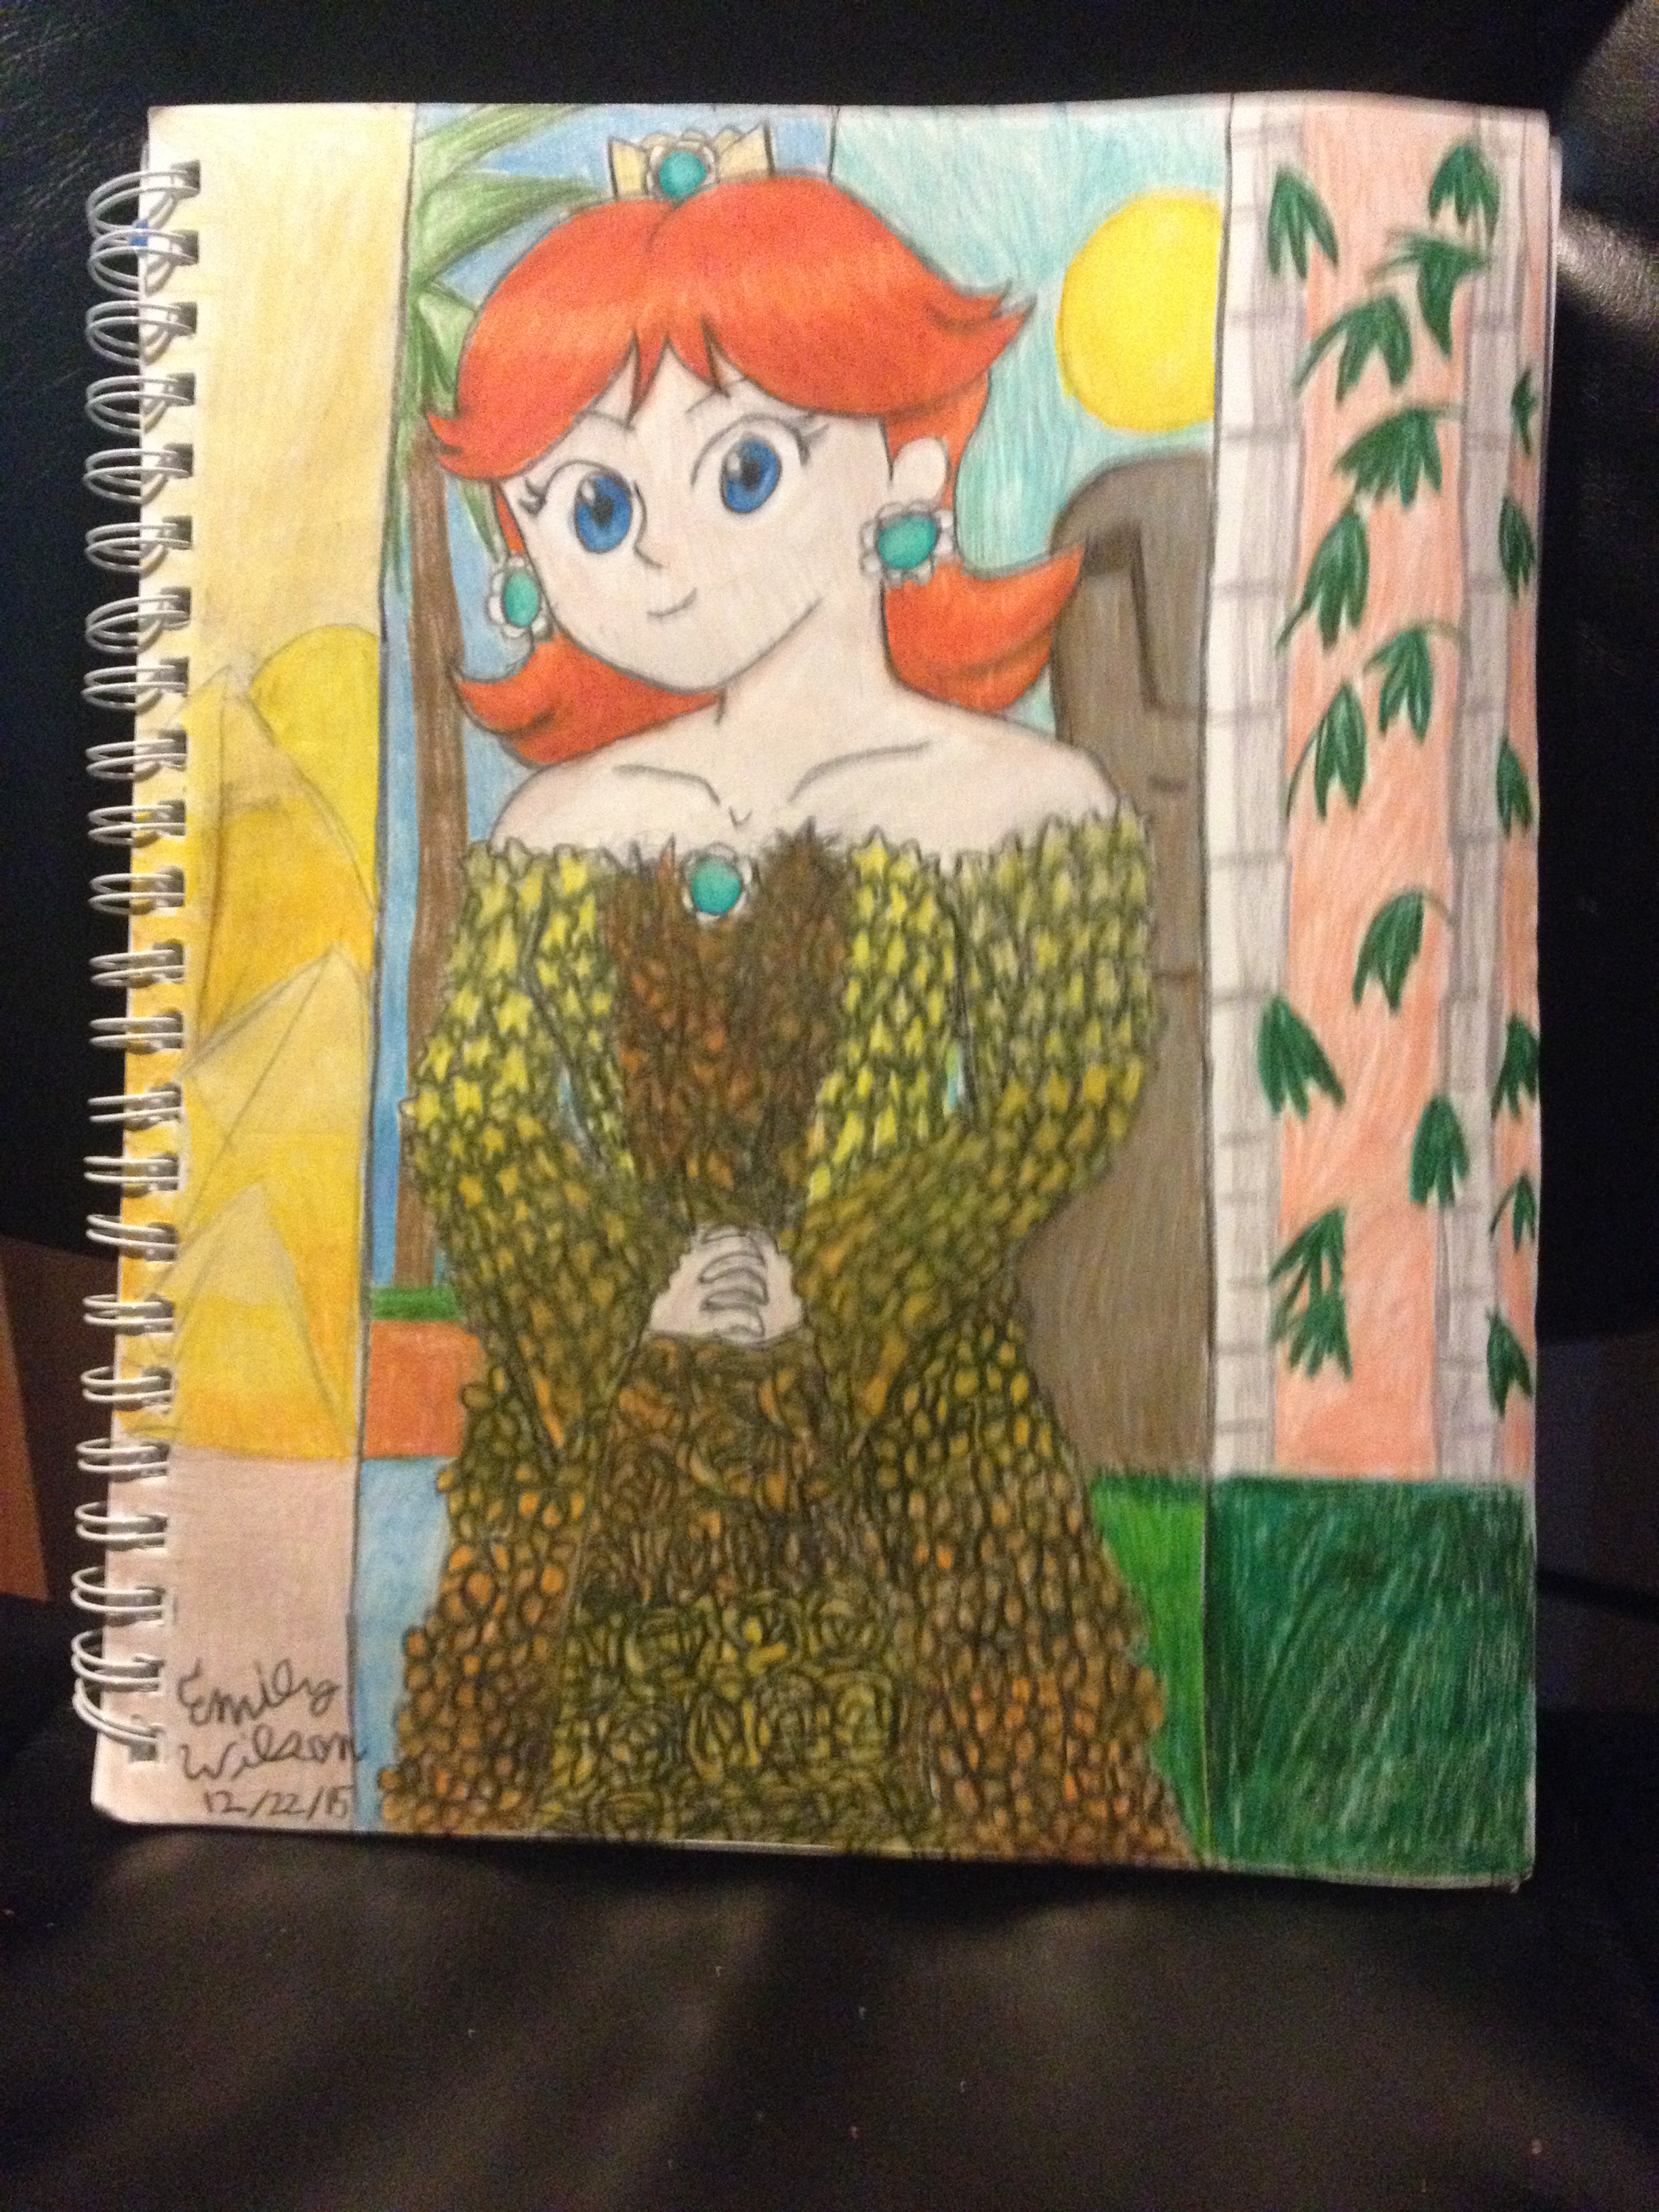 Sketchbook Drawing 18 - Daisy, Queen of Sarasaland